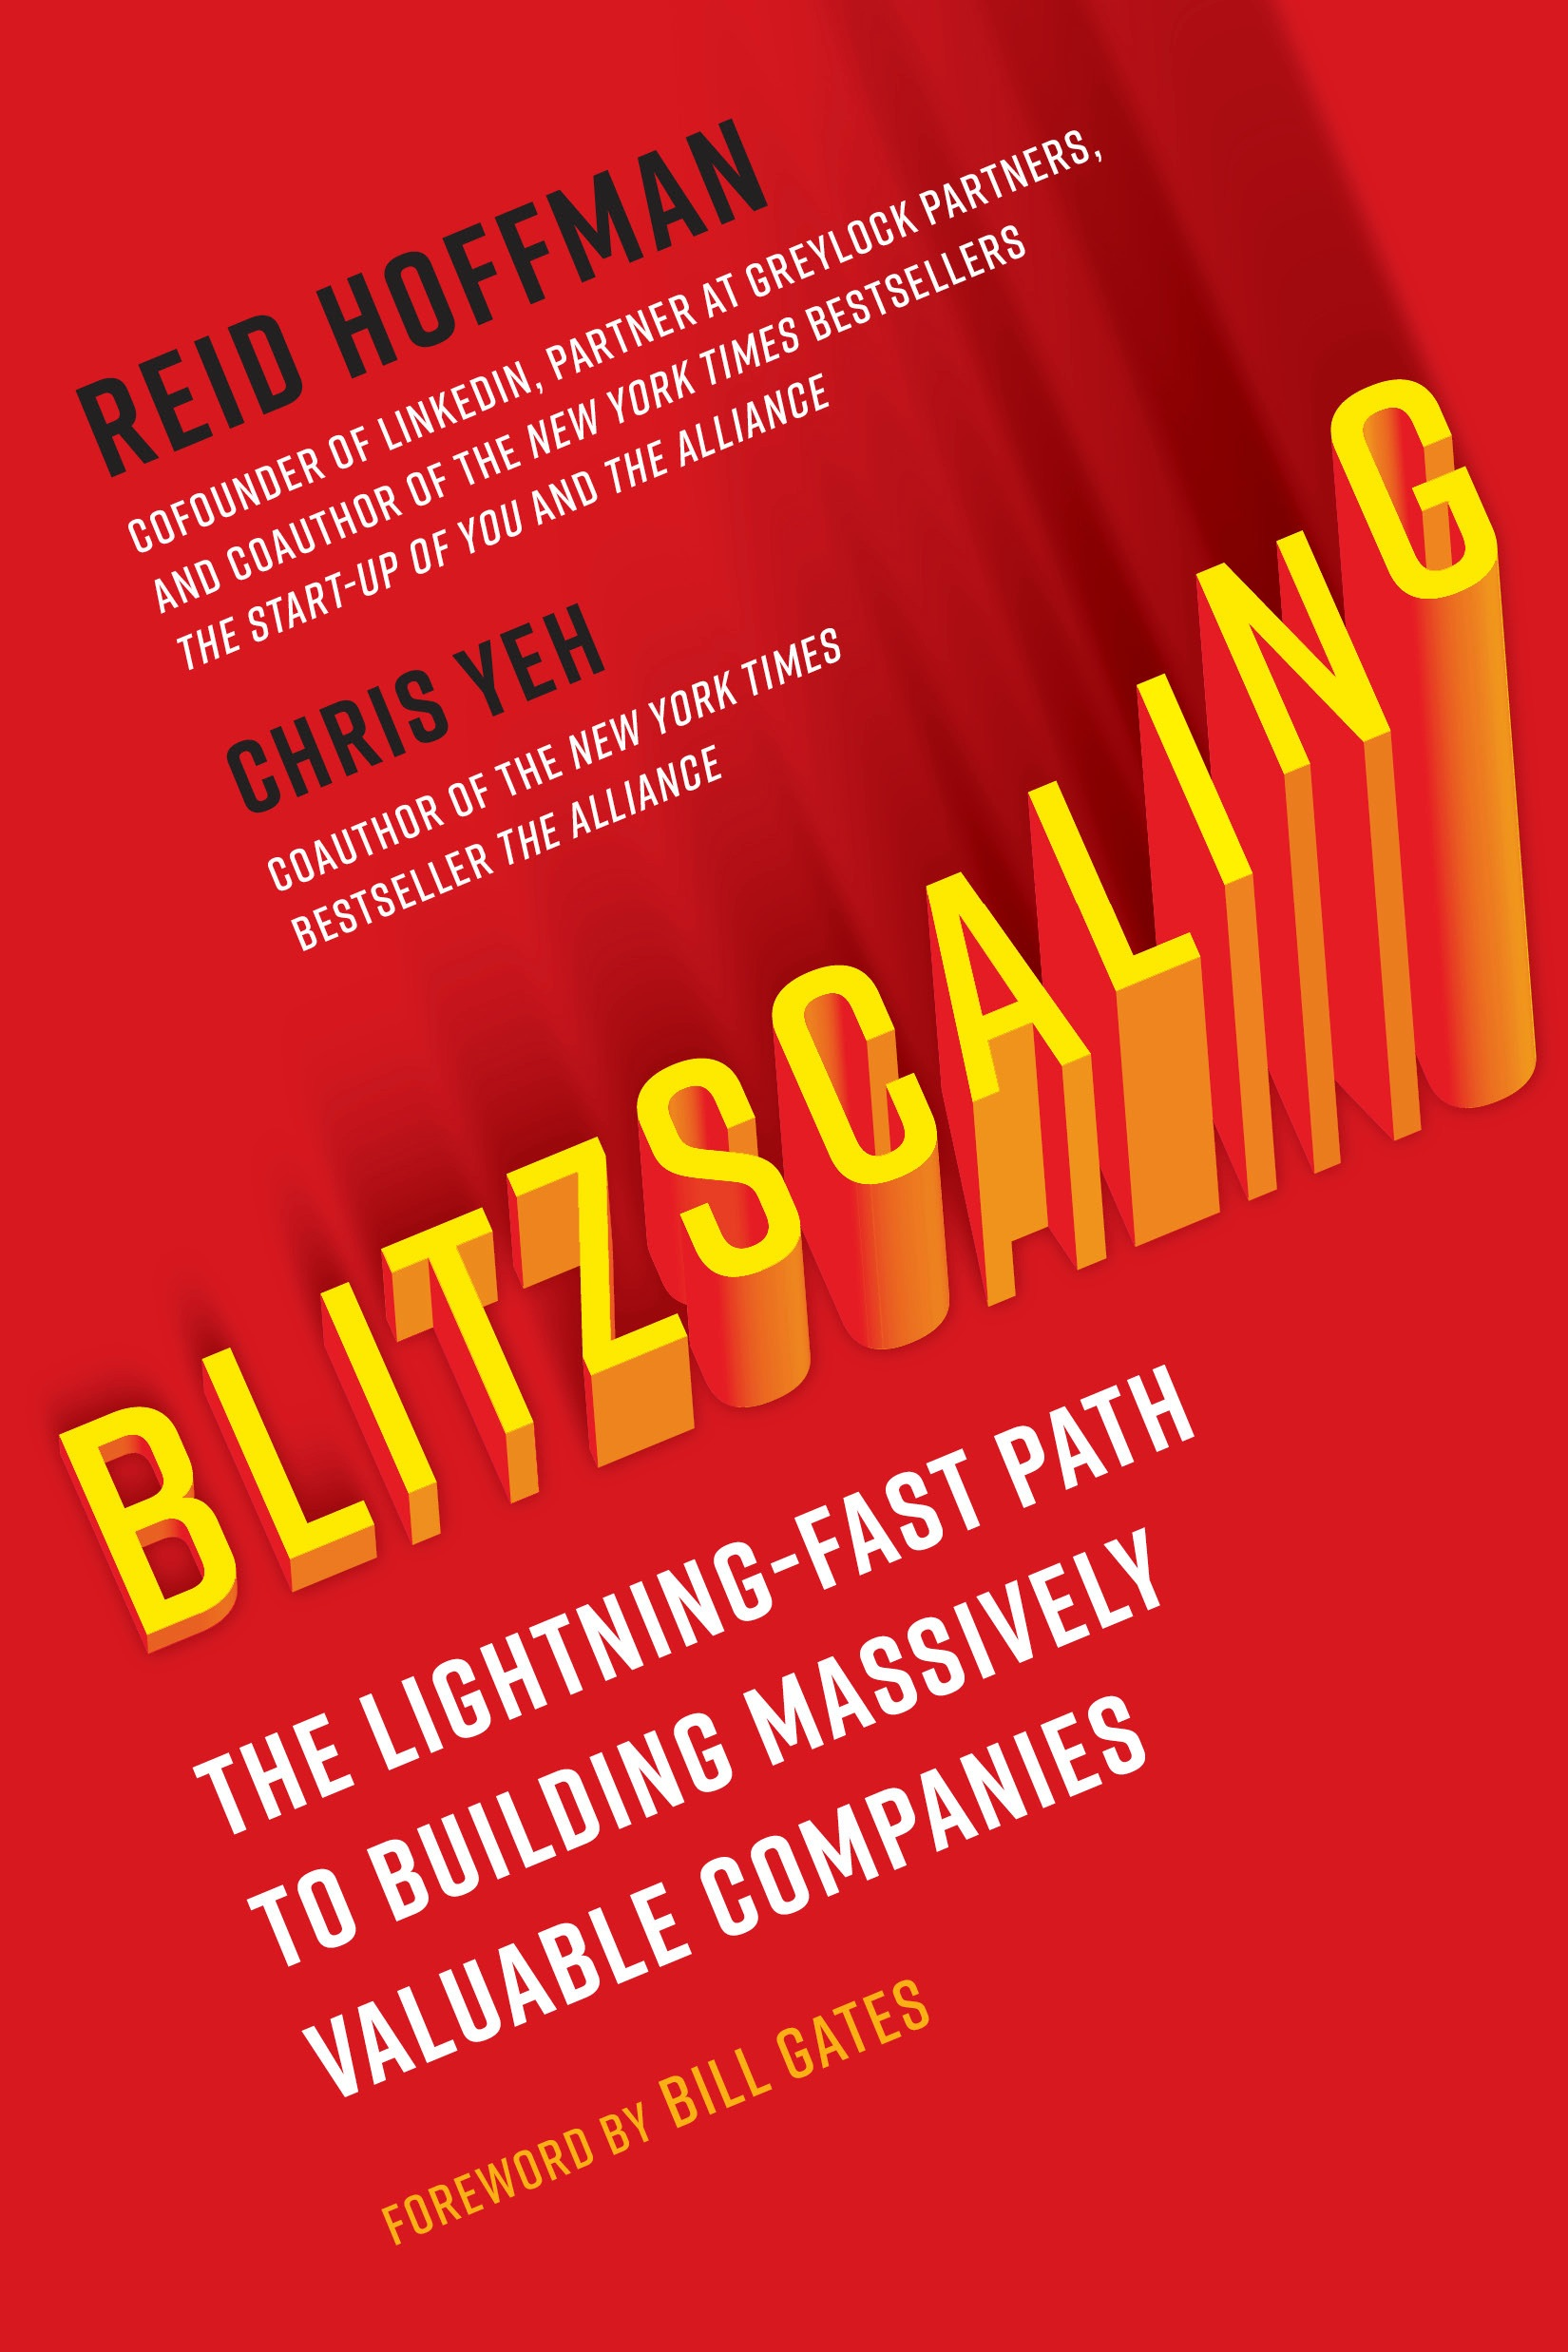 Book Cover of Blitzscaling